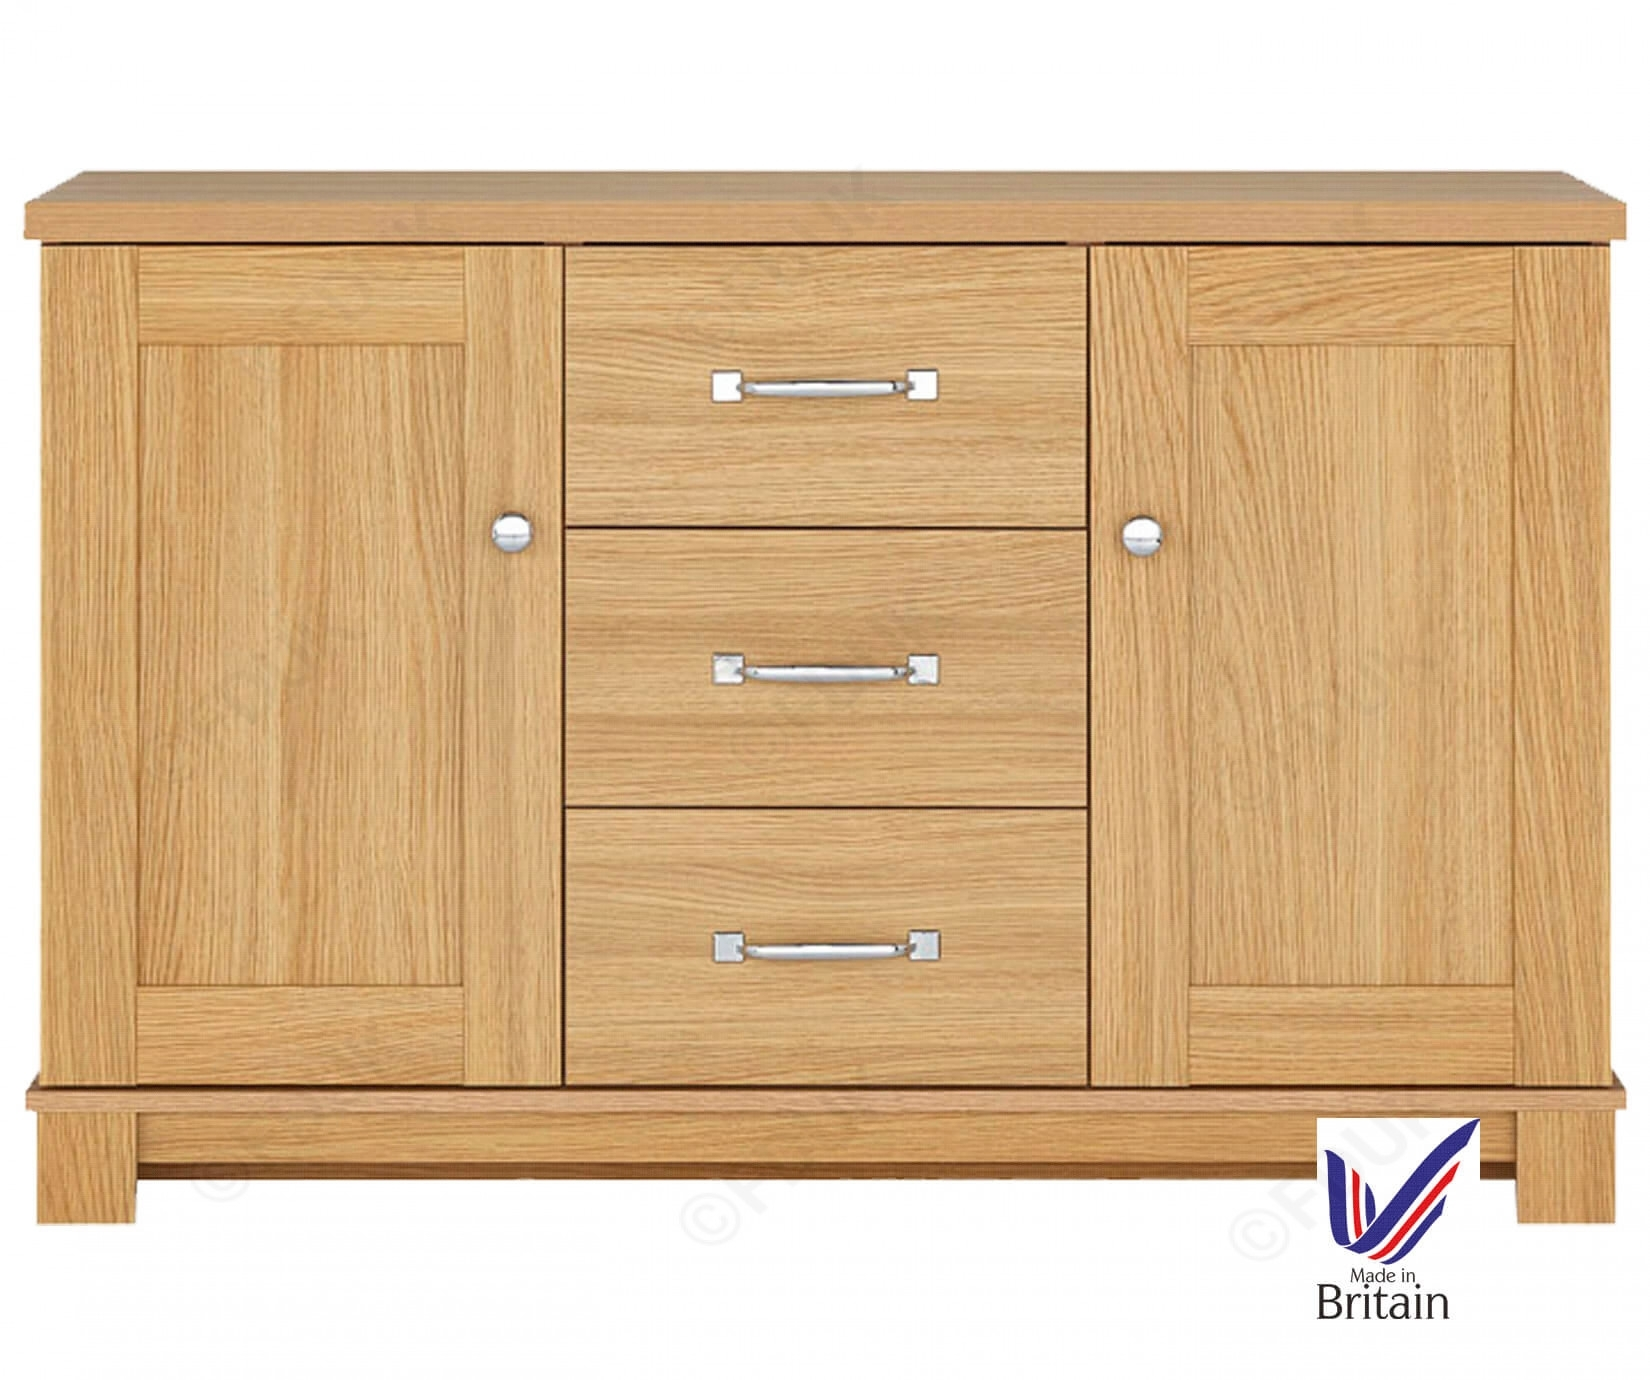 Kingstown Dalby| Dalby 2 Door 3 Center Drawer Sideboard Within Walnut Finish 2 Door/3 Drawer Sideboards (Photo 6 of 30)